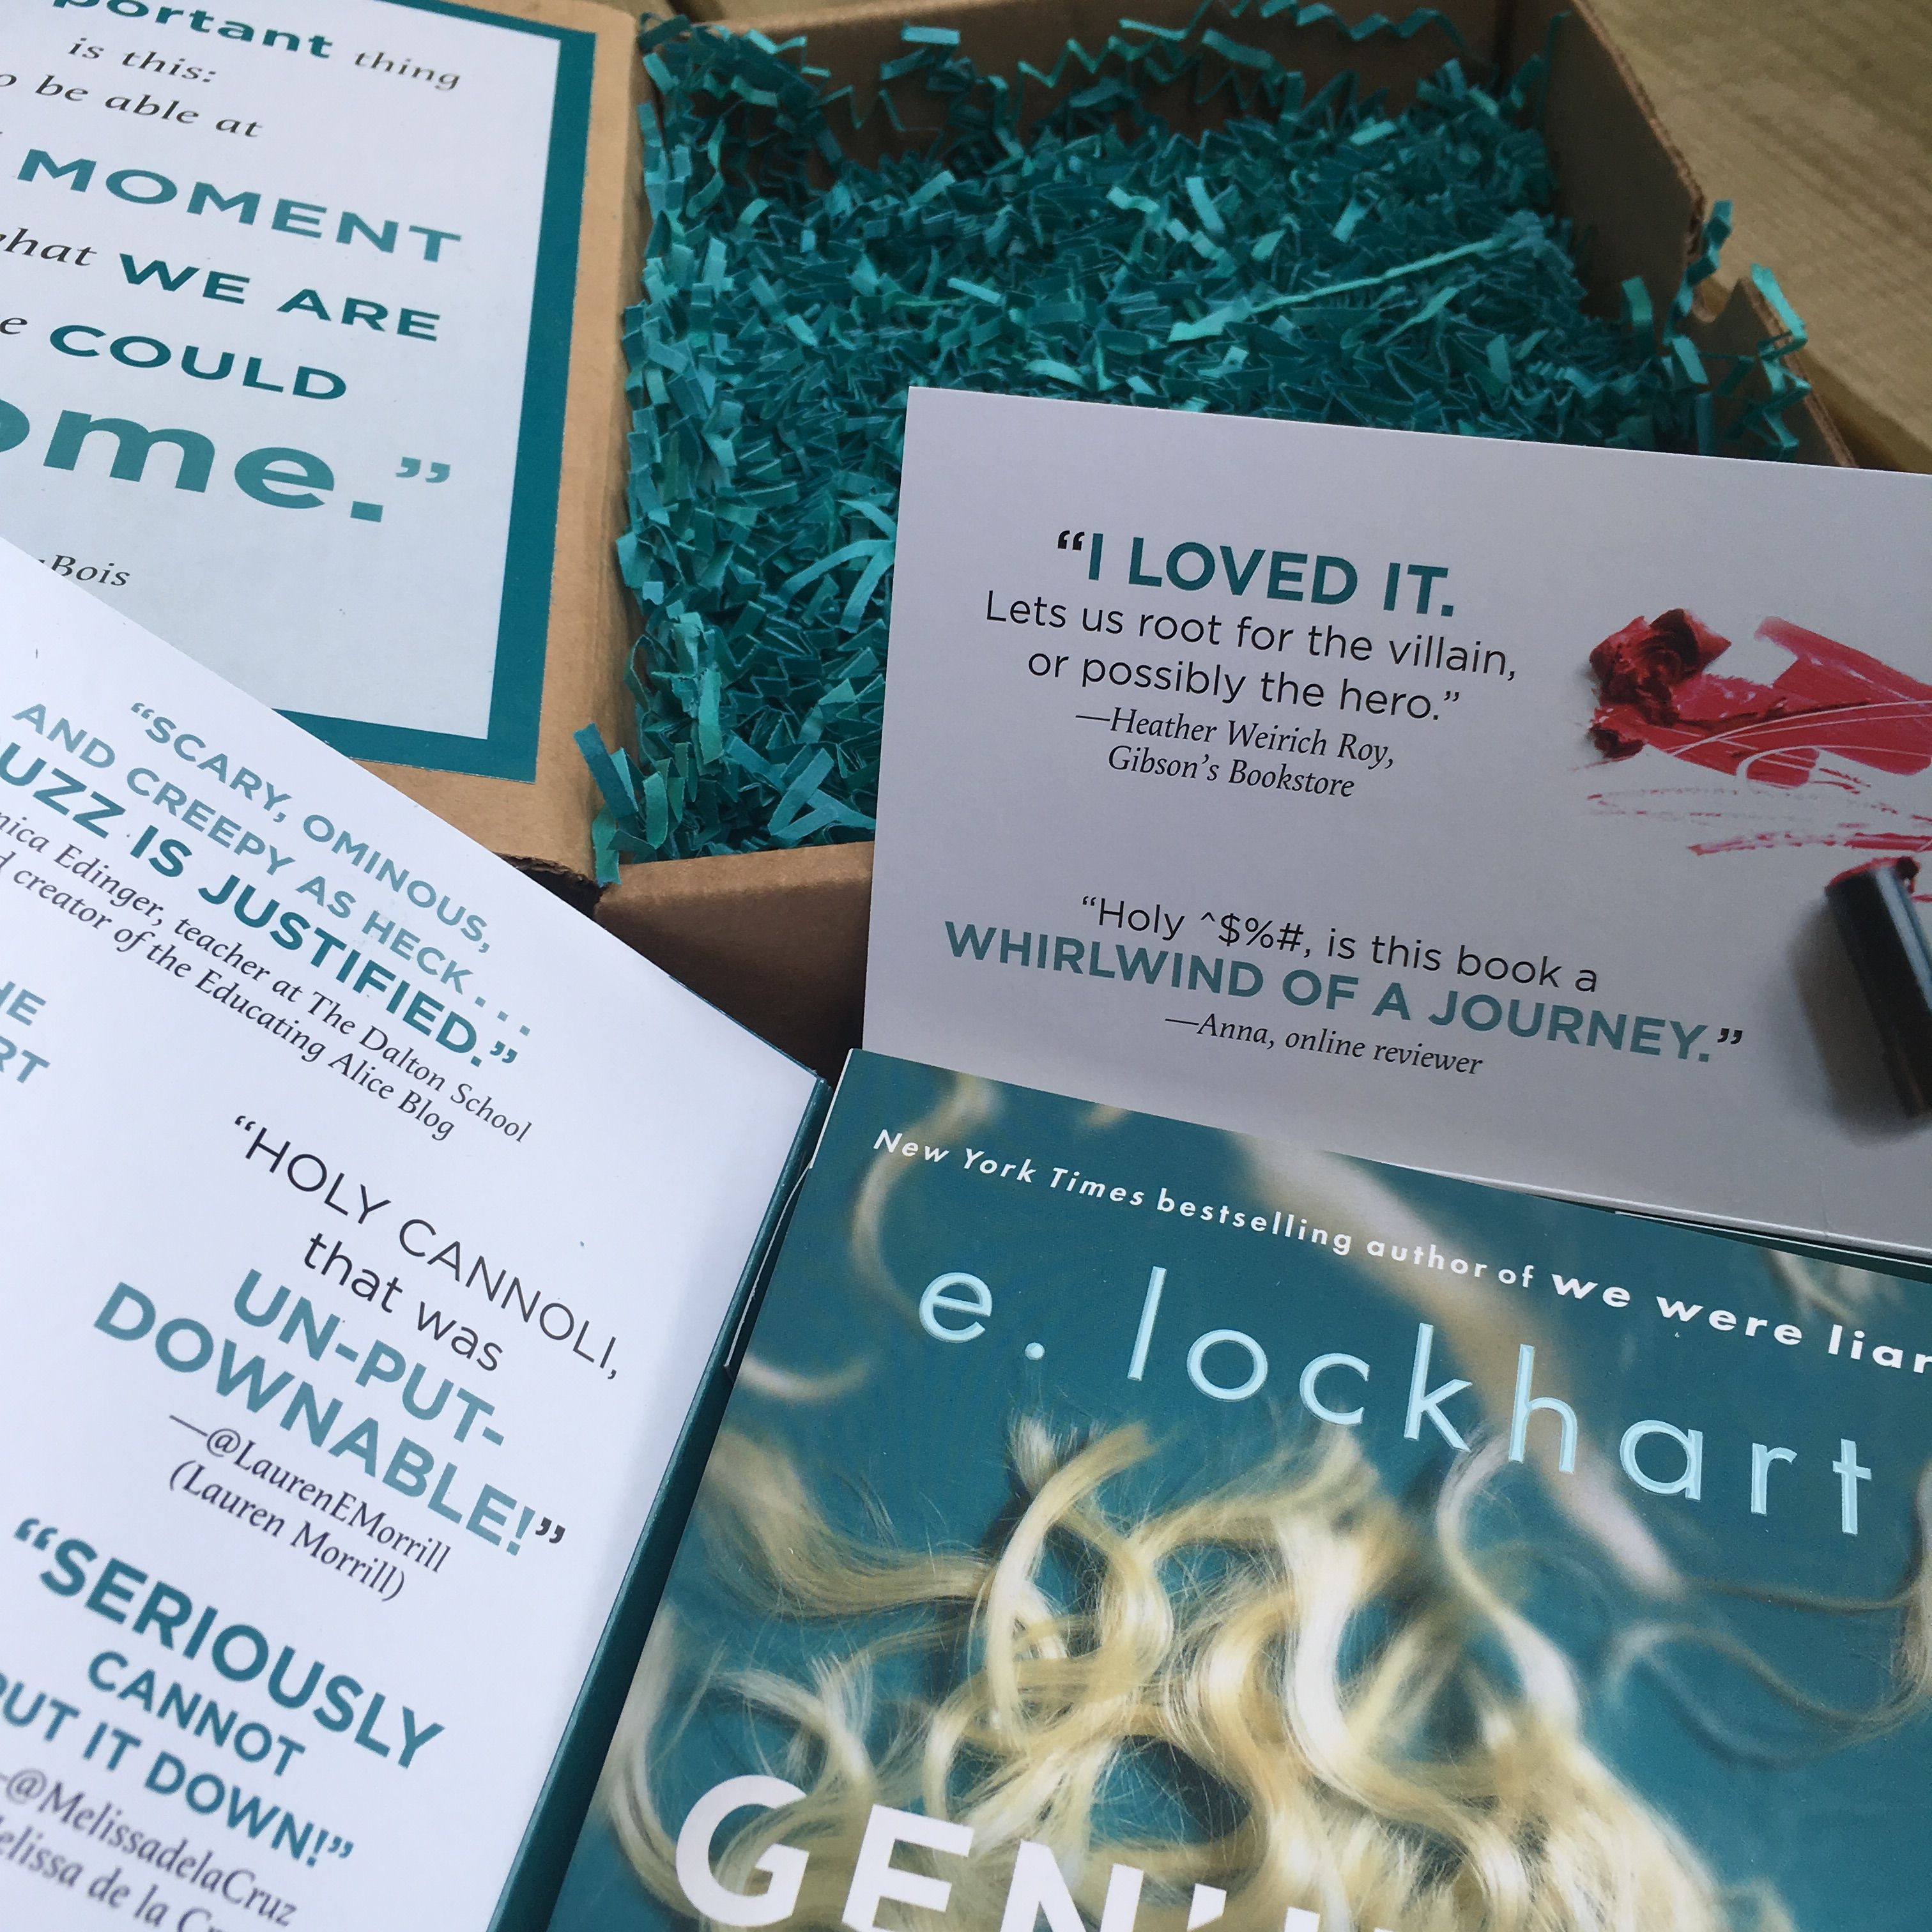 US bookseller preview box for Genuine Fraud by E. Lockhart.